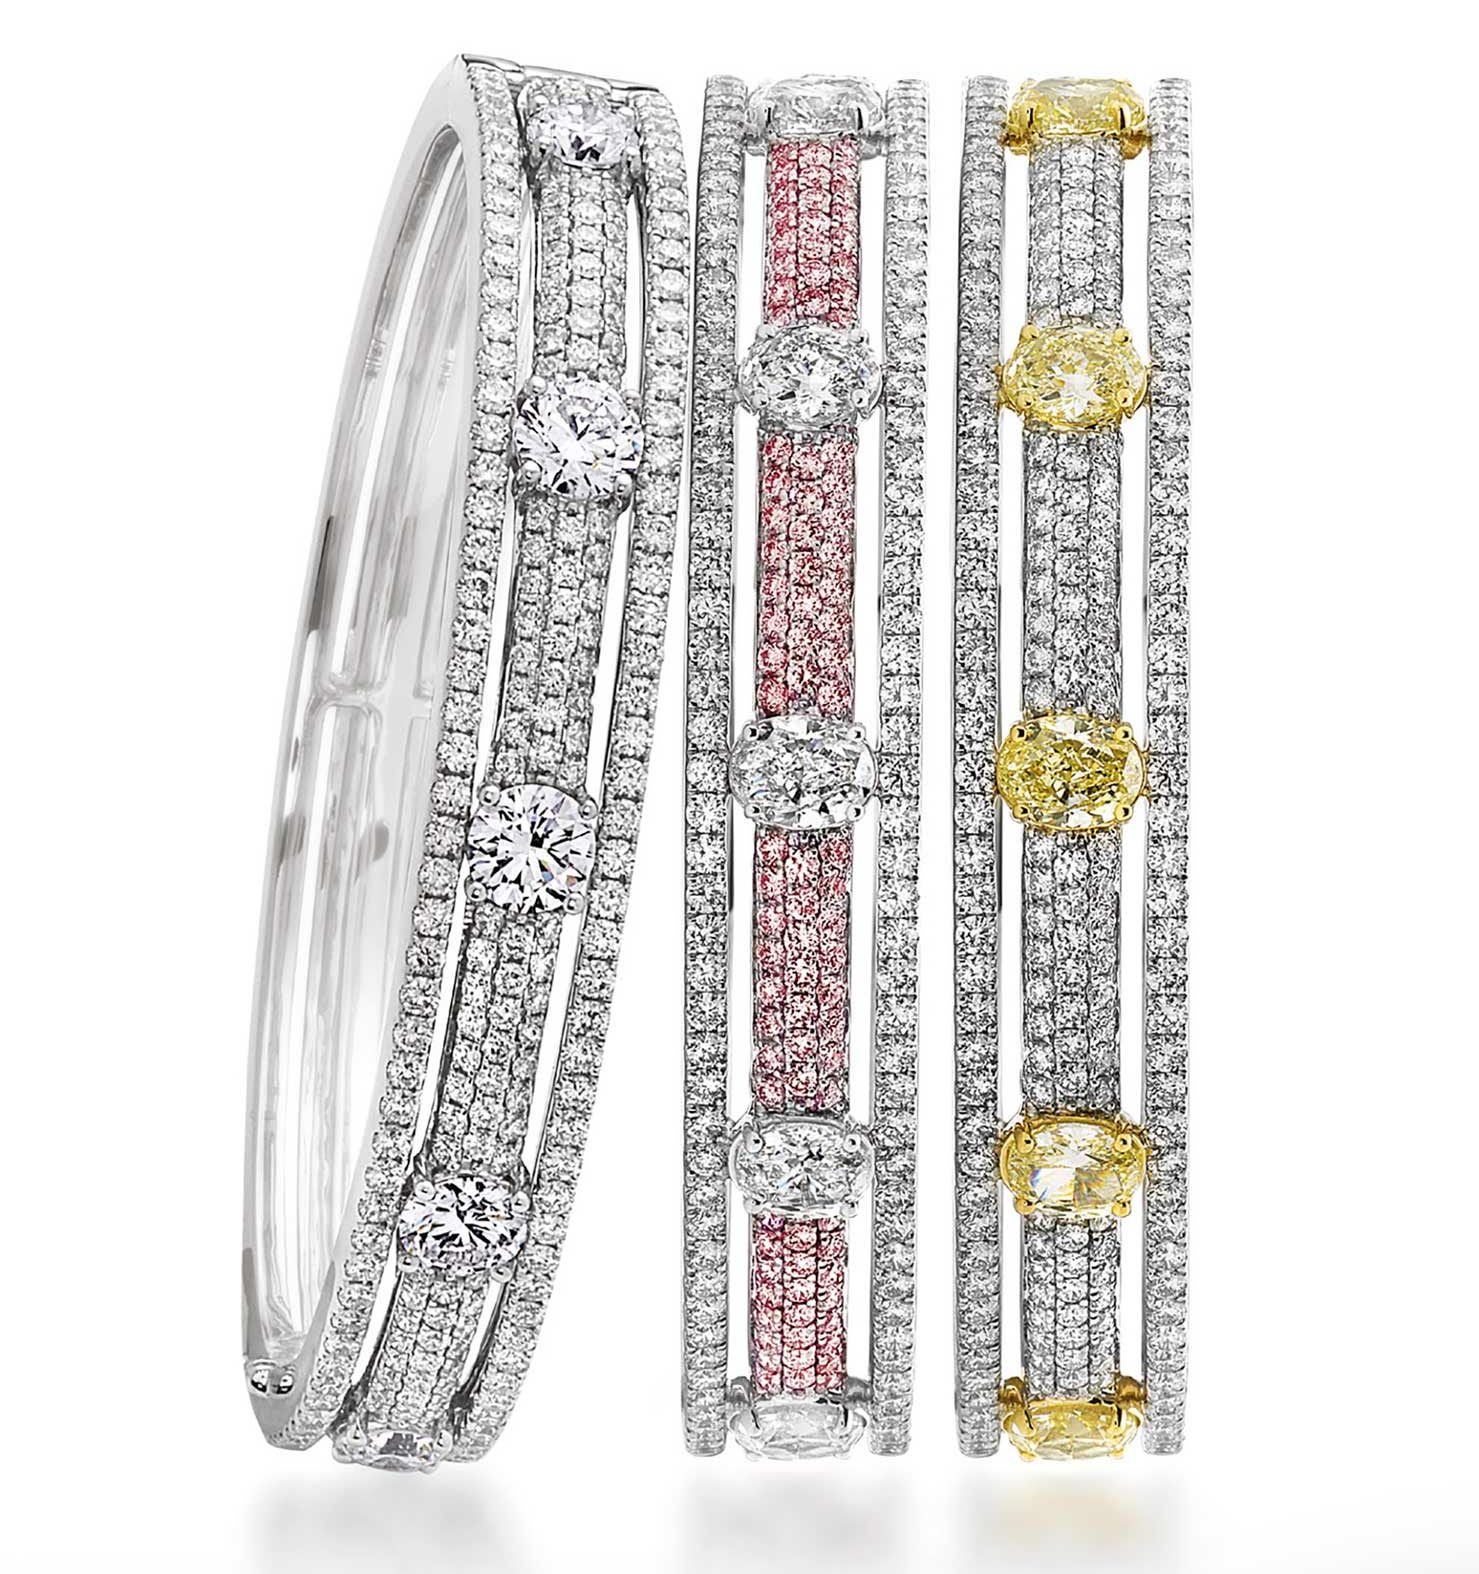 bracelets platinum, with yellow and white diamonds, pink and white diamonds, and all-white diamonds.